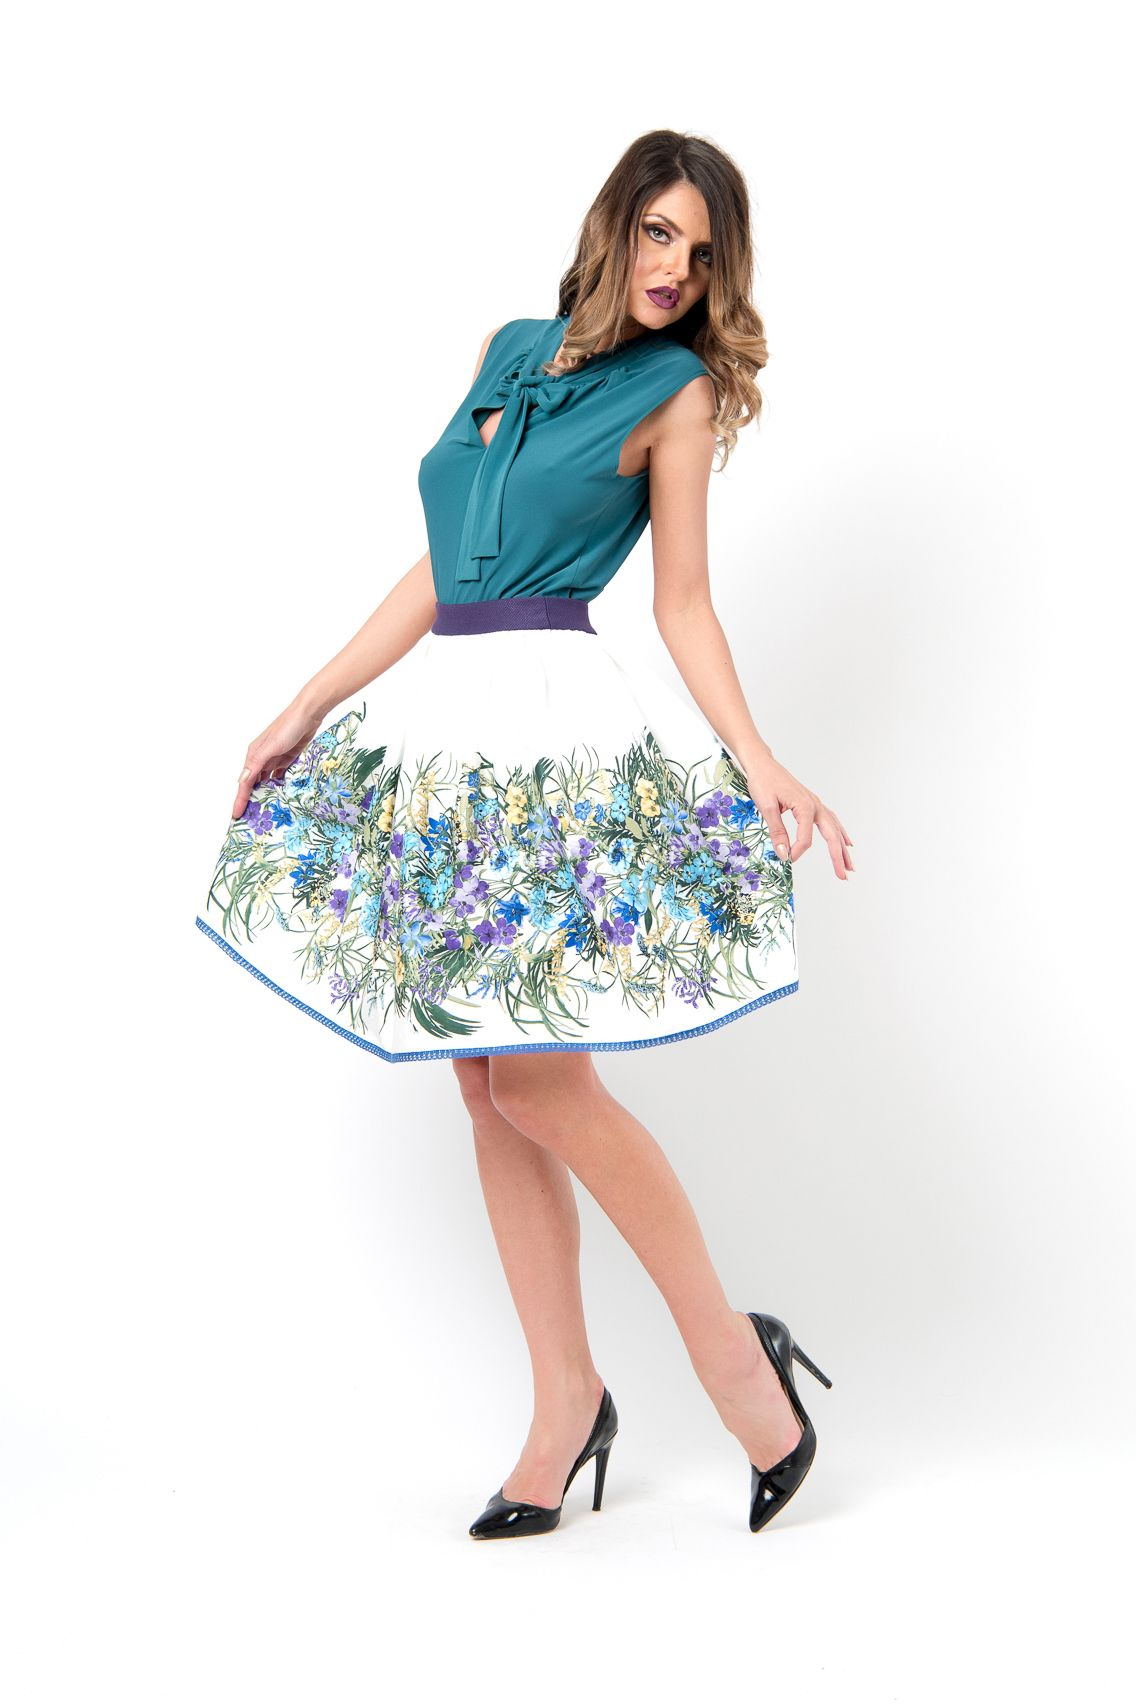 Turquoise Elegant Top With Ribbon And A White Skirt With Blue And